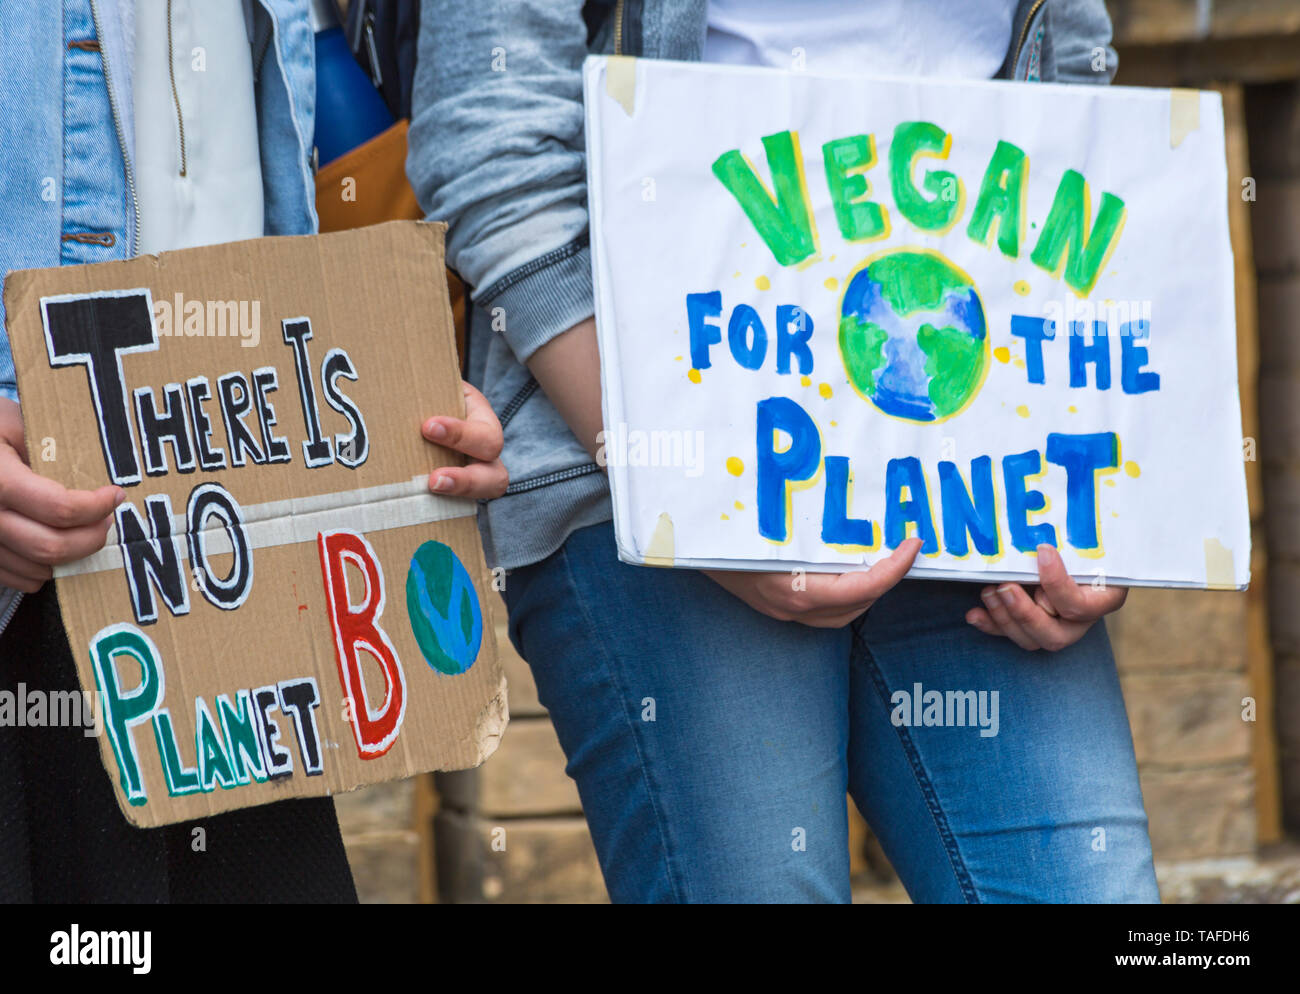 Bournemouth, Dorset, UK. 24th May 2019. Youth Strike 4 Climate gather in Bournemouth Square with their messages about climate change, before marching to the Town Hall.  There is no planet B, vegan for the planet Earth signs. Credit: Carolyn Jenkins/Alamy Live News Stock Photo